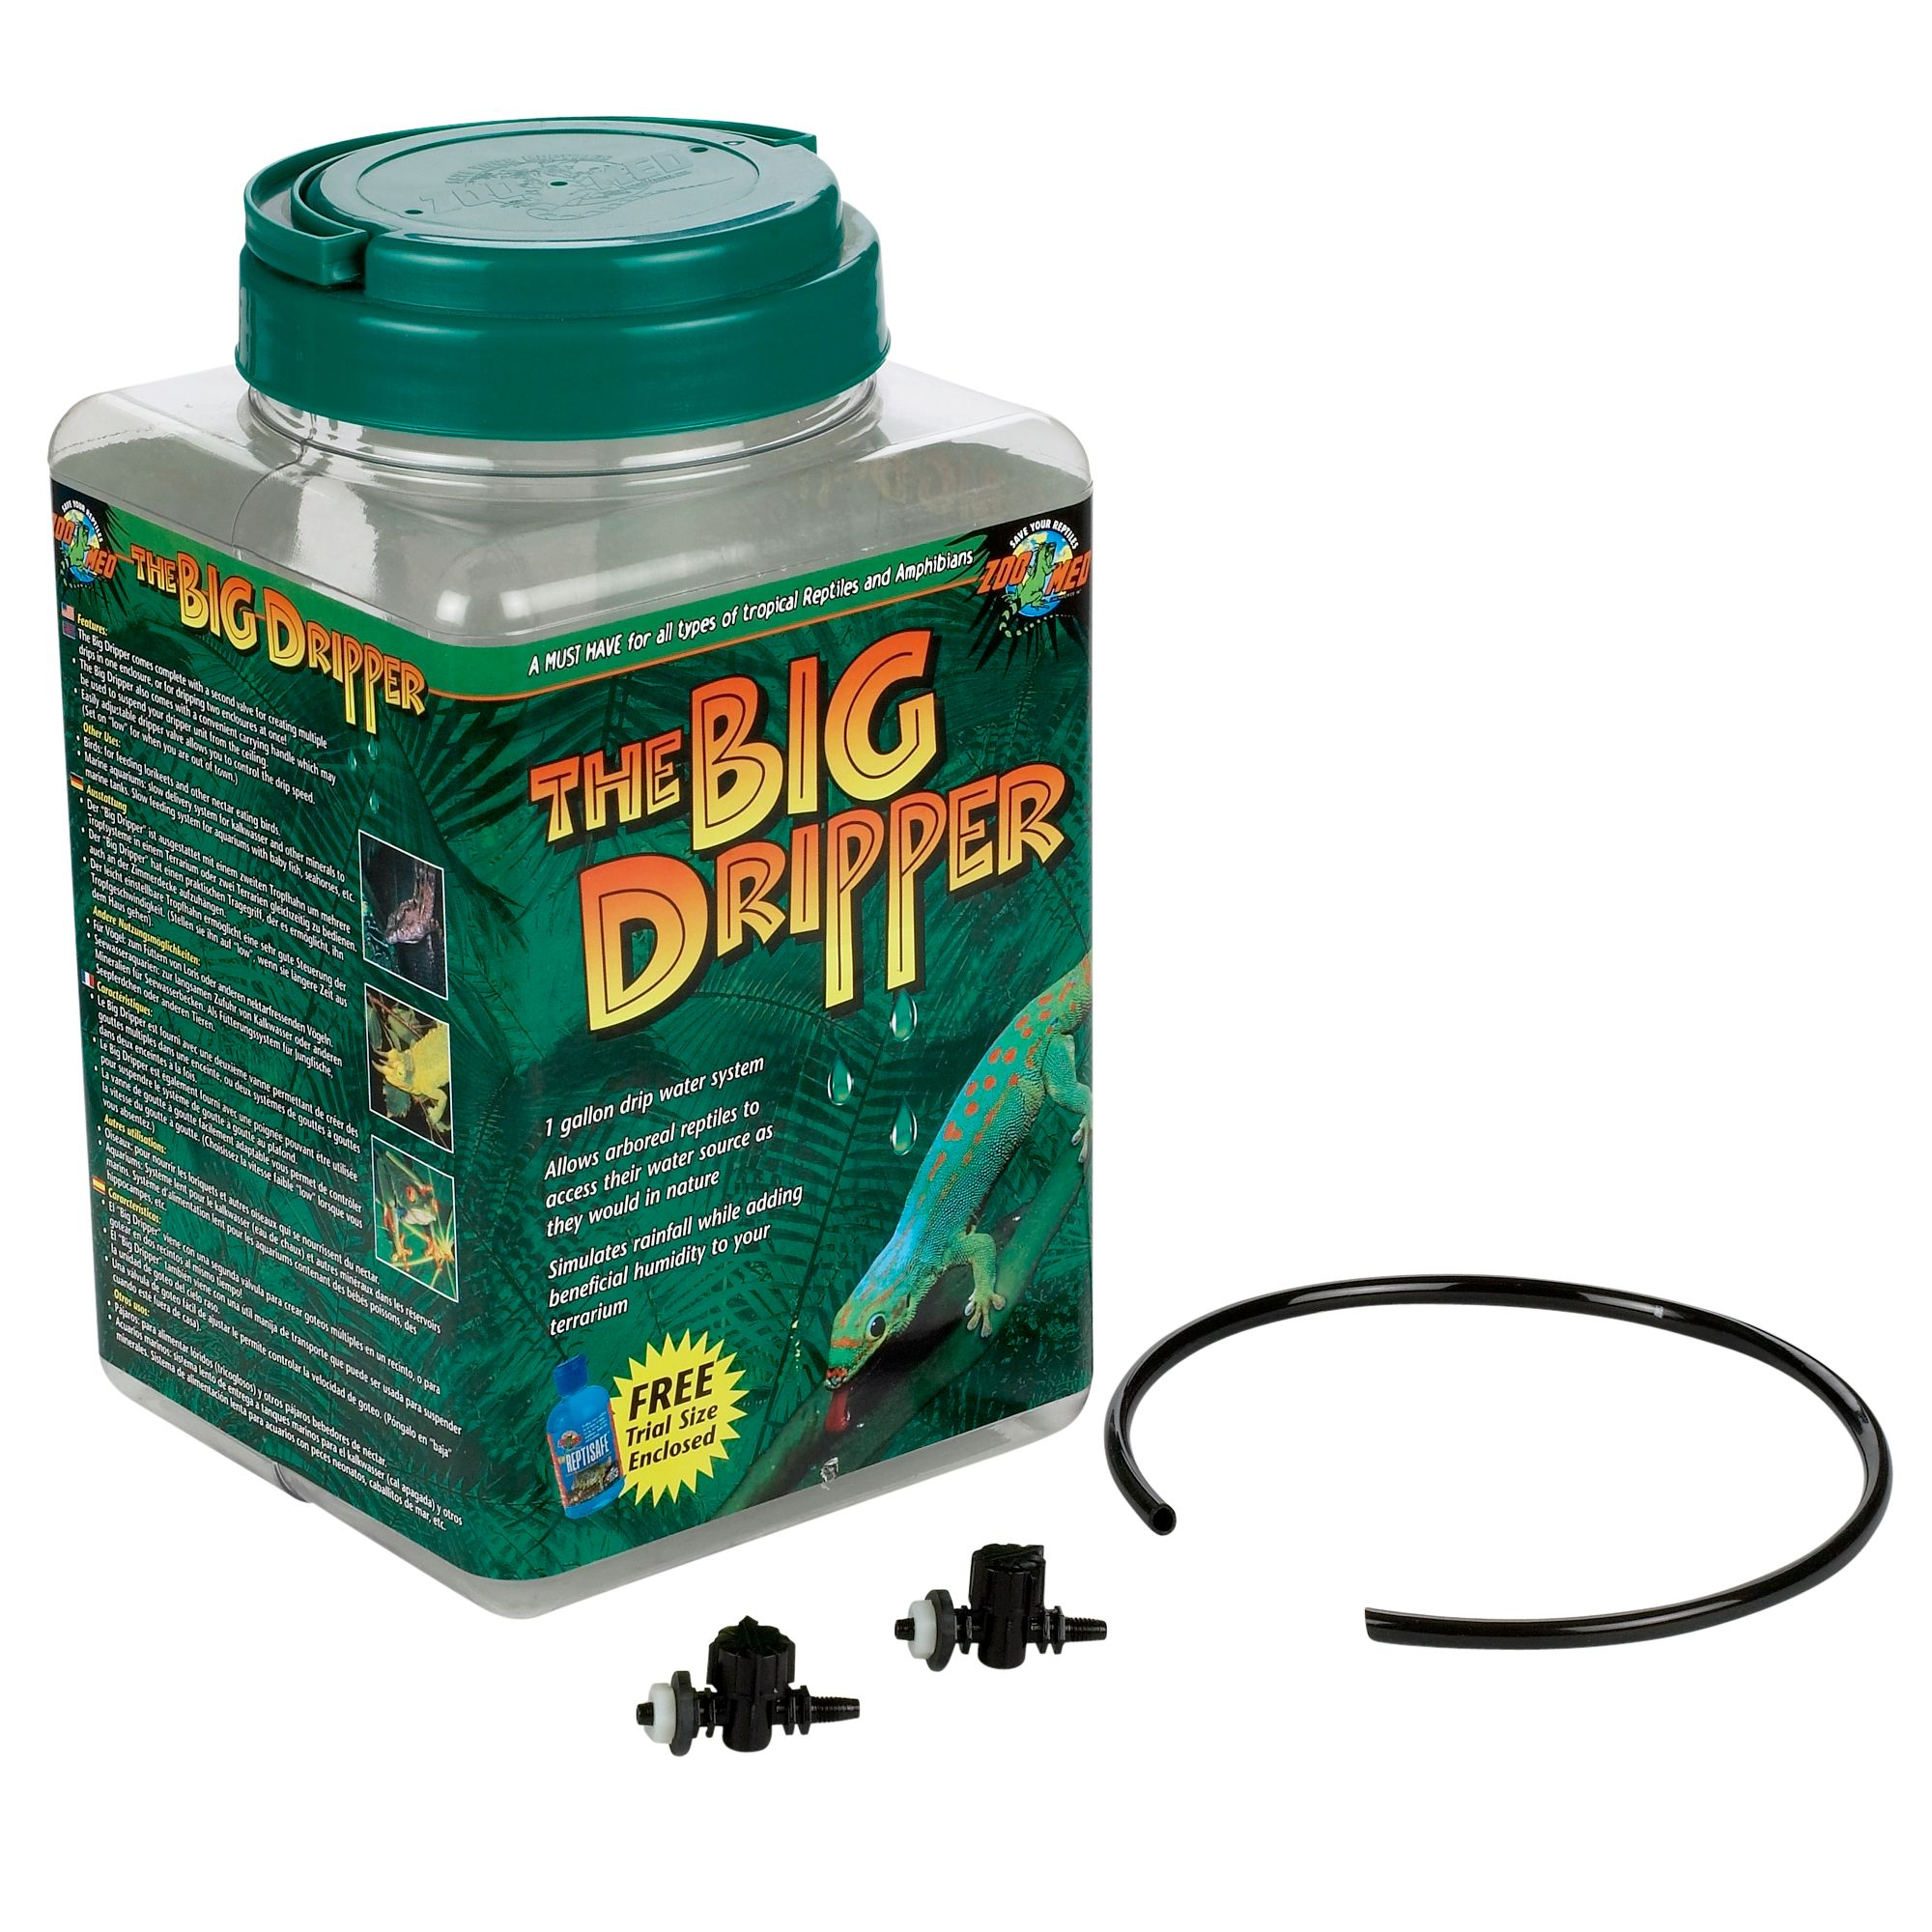 Zoo Med The Big Dripper Reptile Drip System